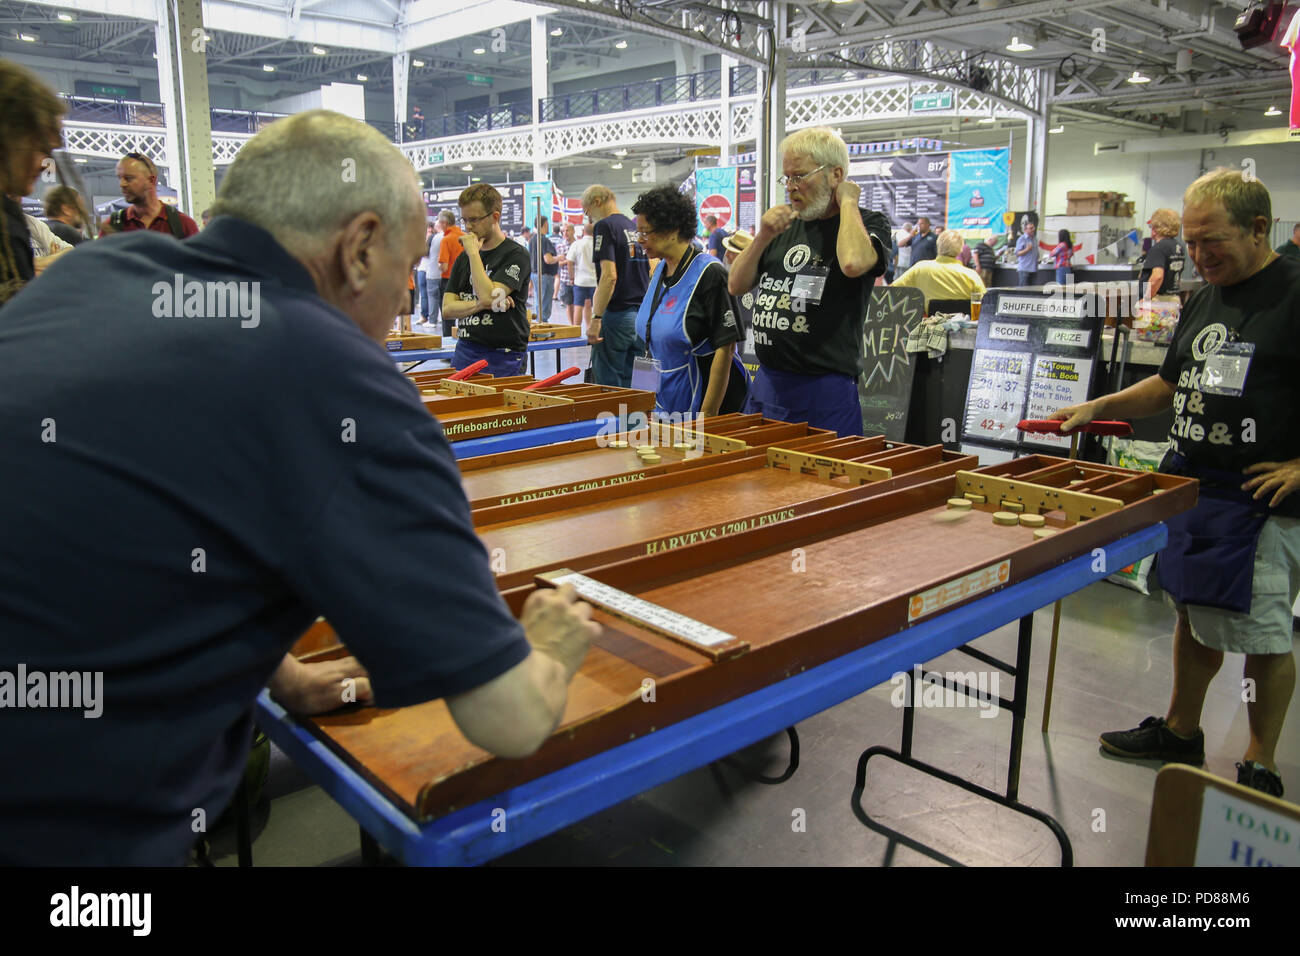 London UK 07 August 2018  for some one glass wasnt enough at the Great British Beer Festival held from today until the 11th of August at the London Olympia,traditional PUB games ,thousands of beers ciders ,stouts wines real ales,pale ales  and pub grup  to keep everybody happy @Paul Quezada-Neiman/Alamy Live News - Stock Image